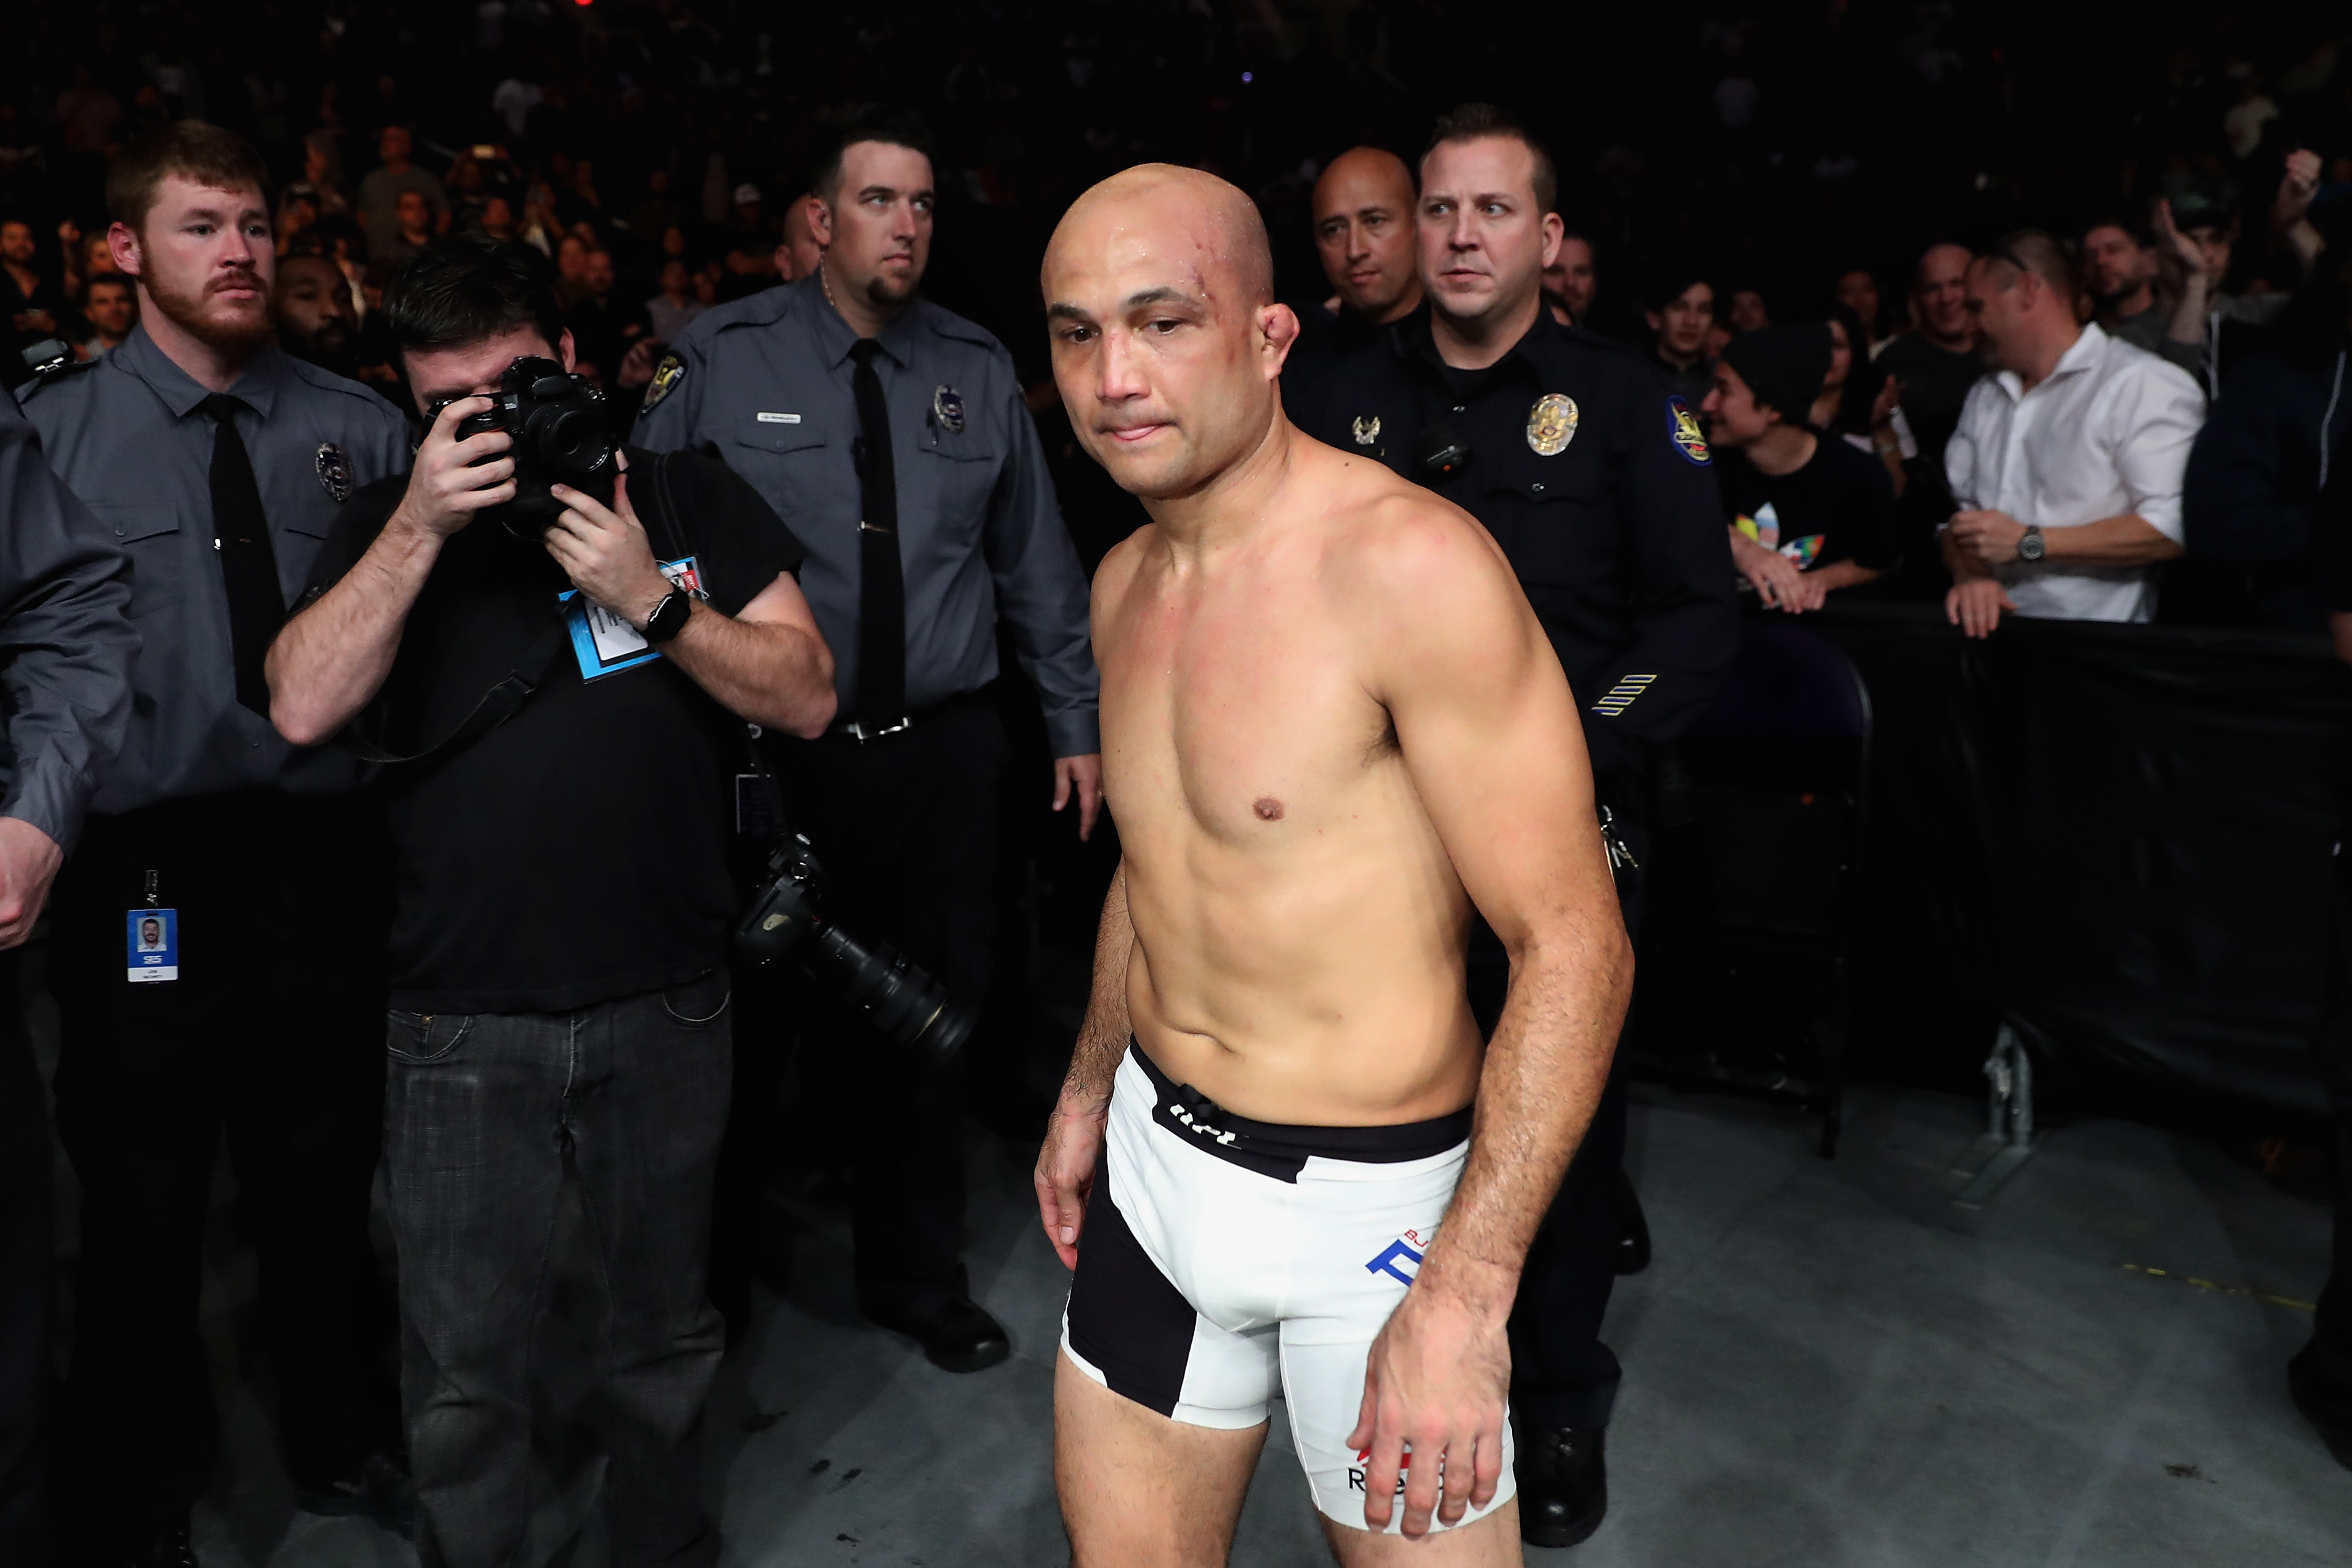 Bellator          Rampage vs King Mo        press conference recap  Fat     MMAmania com Midnight Mania       The Prodigy      Returns  Again  Bringing you the weird and wild from the world of MMA each and every weeknight  including BJ Penn giving it